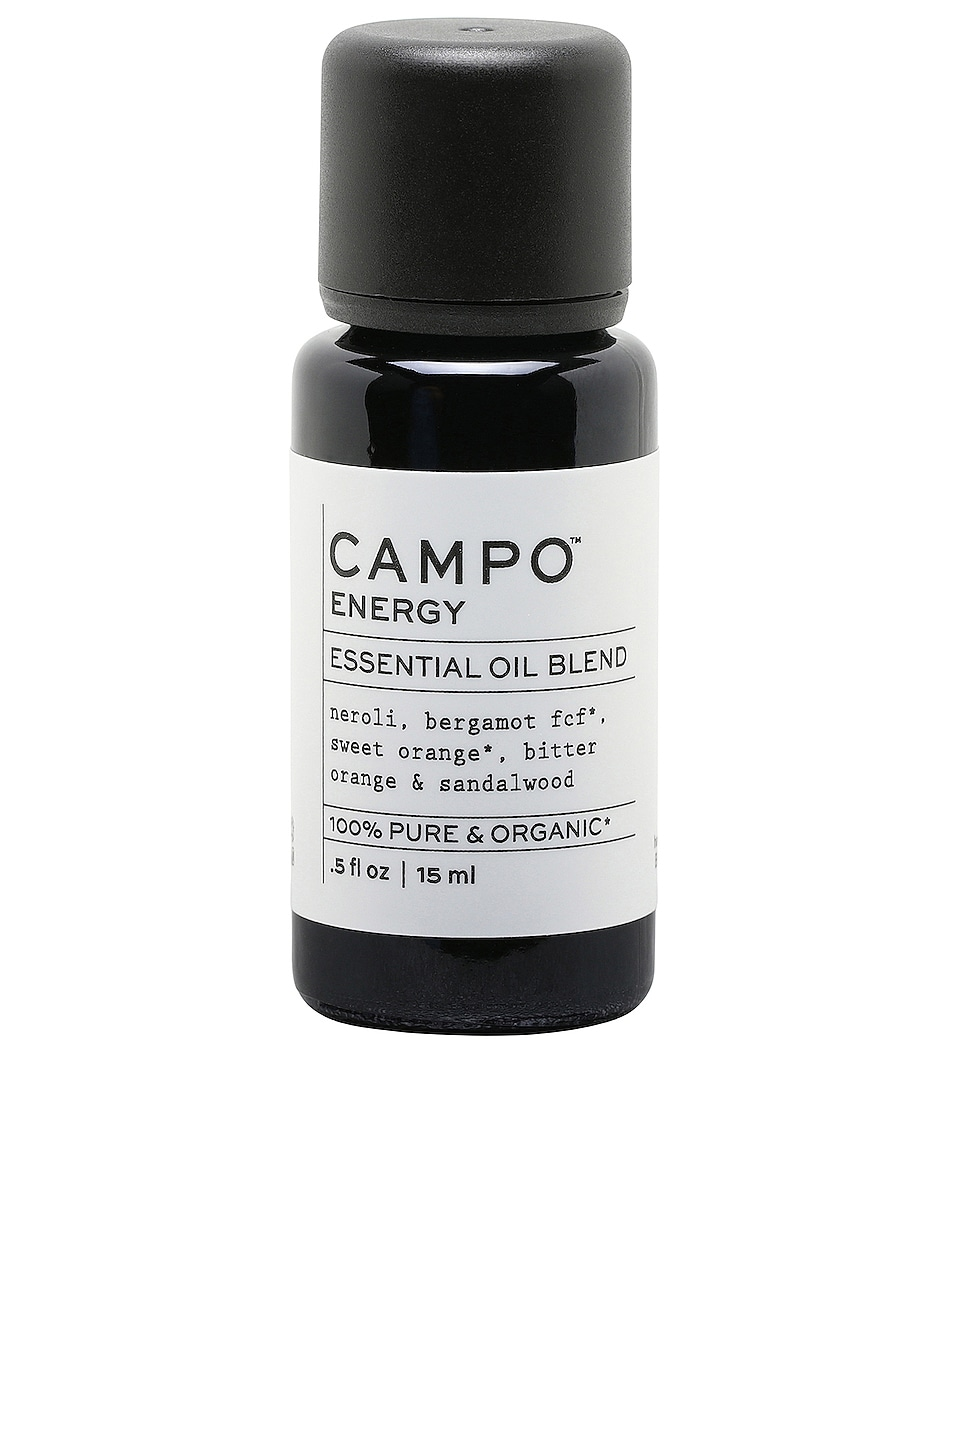 CAMPO Energy-Uplifting Blend 100% Pure Essential Oil Blend in Beauty: Na